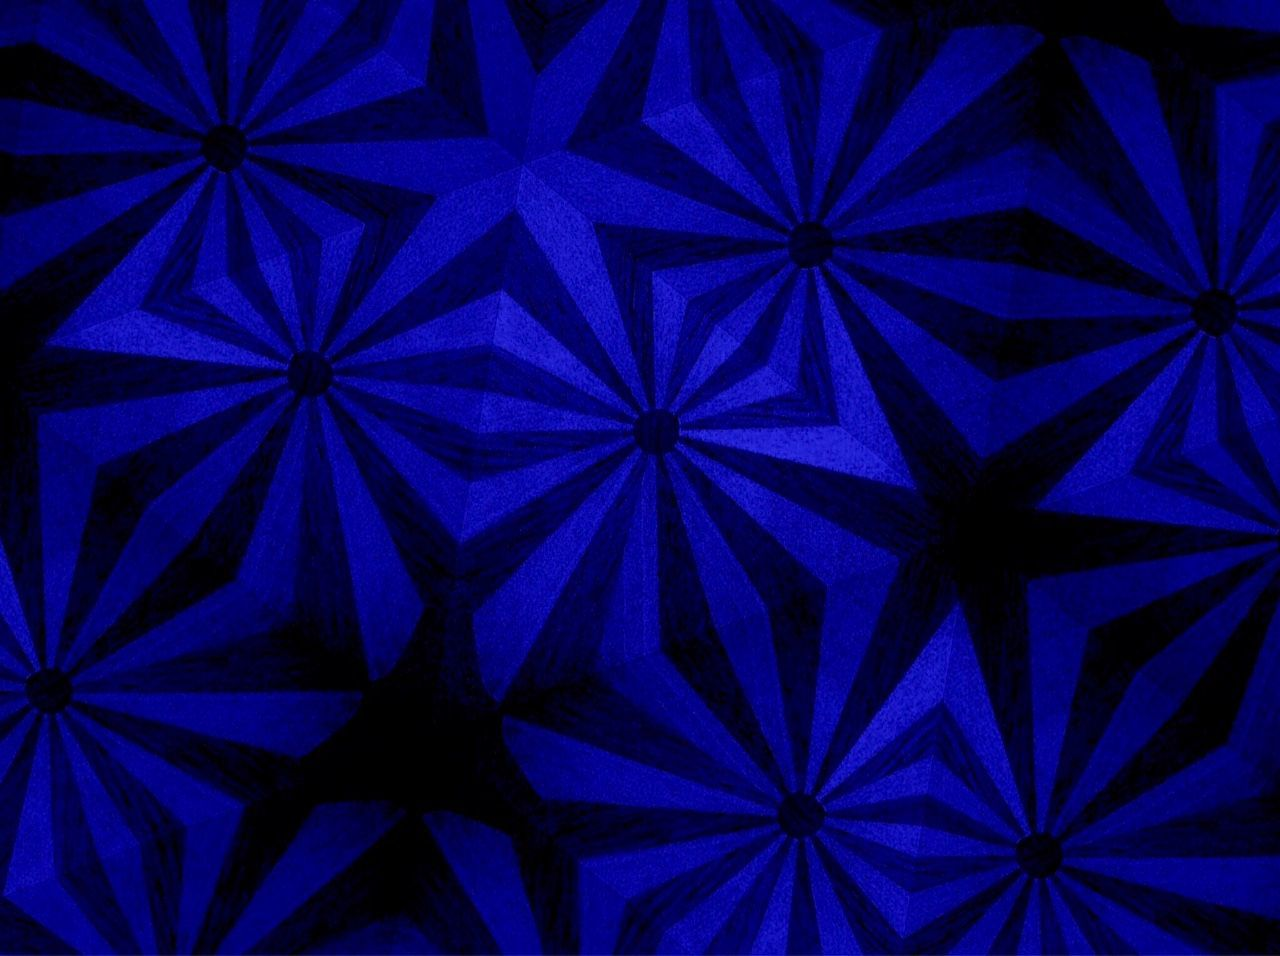 backgrounds, blue, pattern, full frame, no people, indoors, architecture, fame, night, close-up